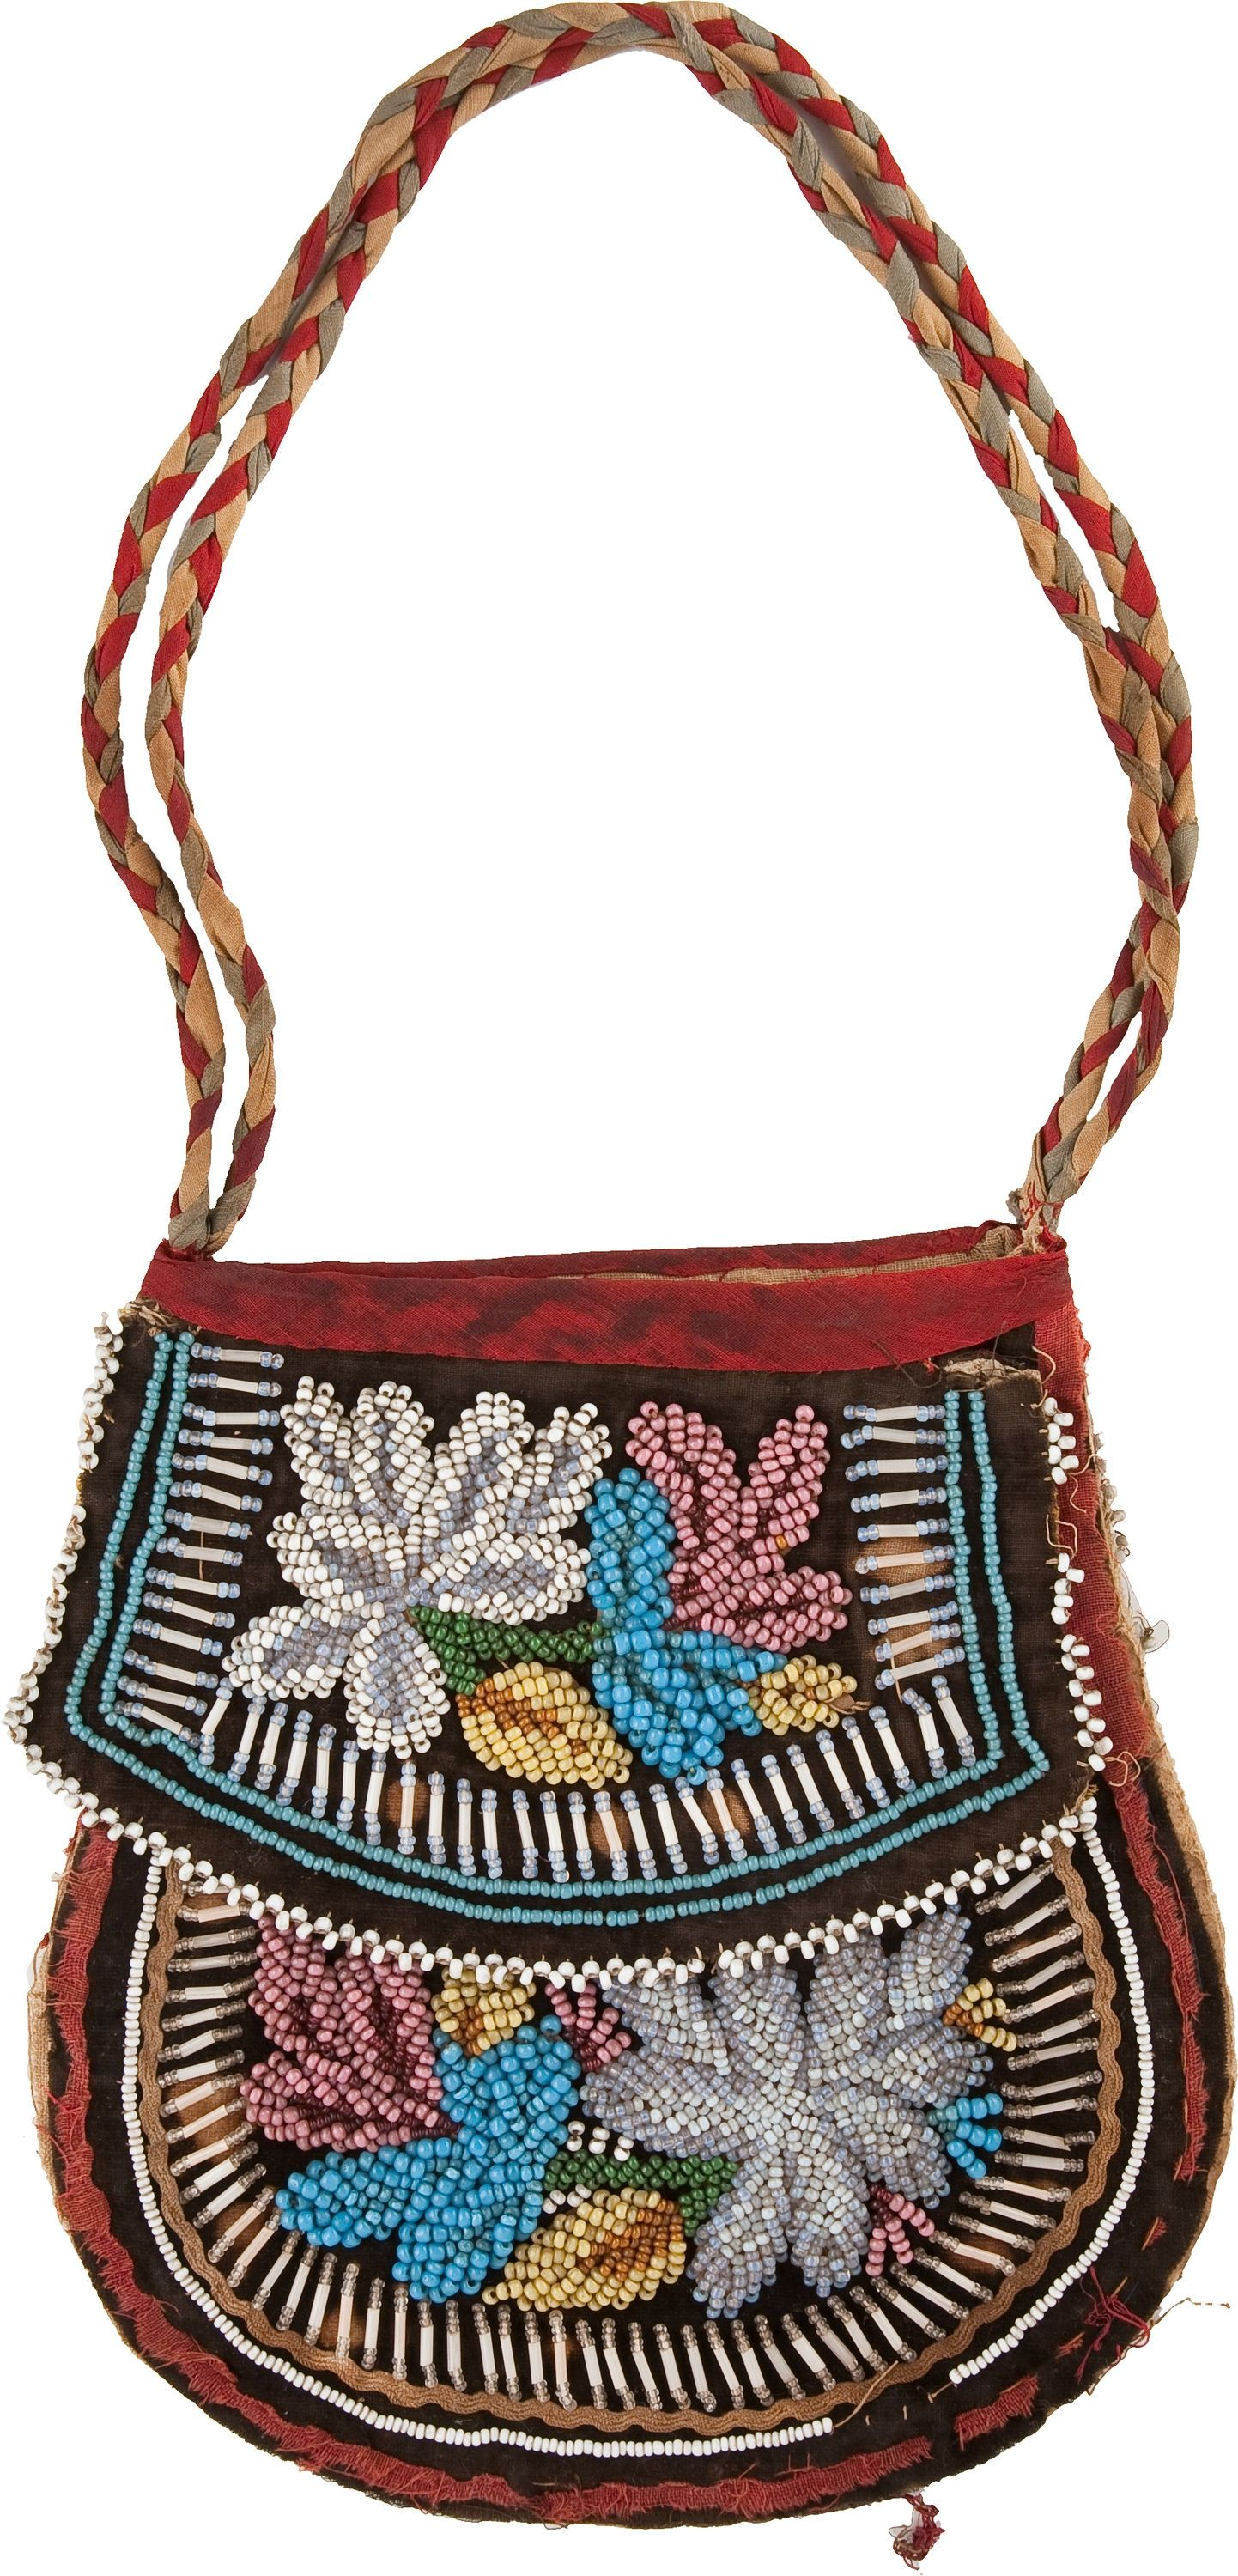 An Iroquois Beaded Cloth Pouch C American Indian